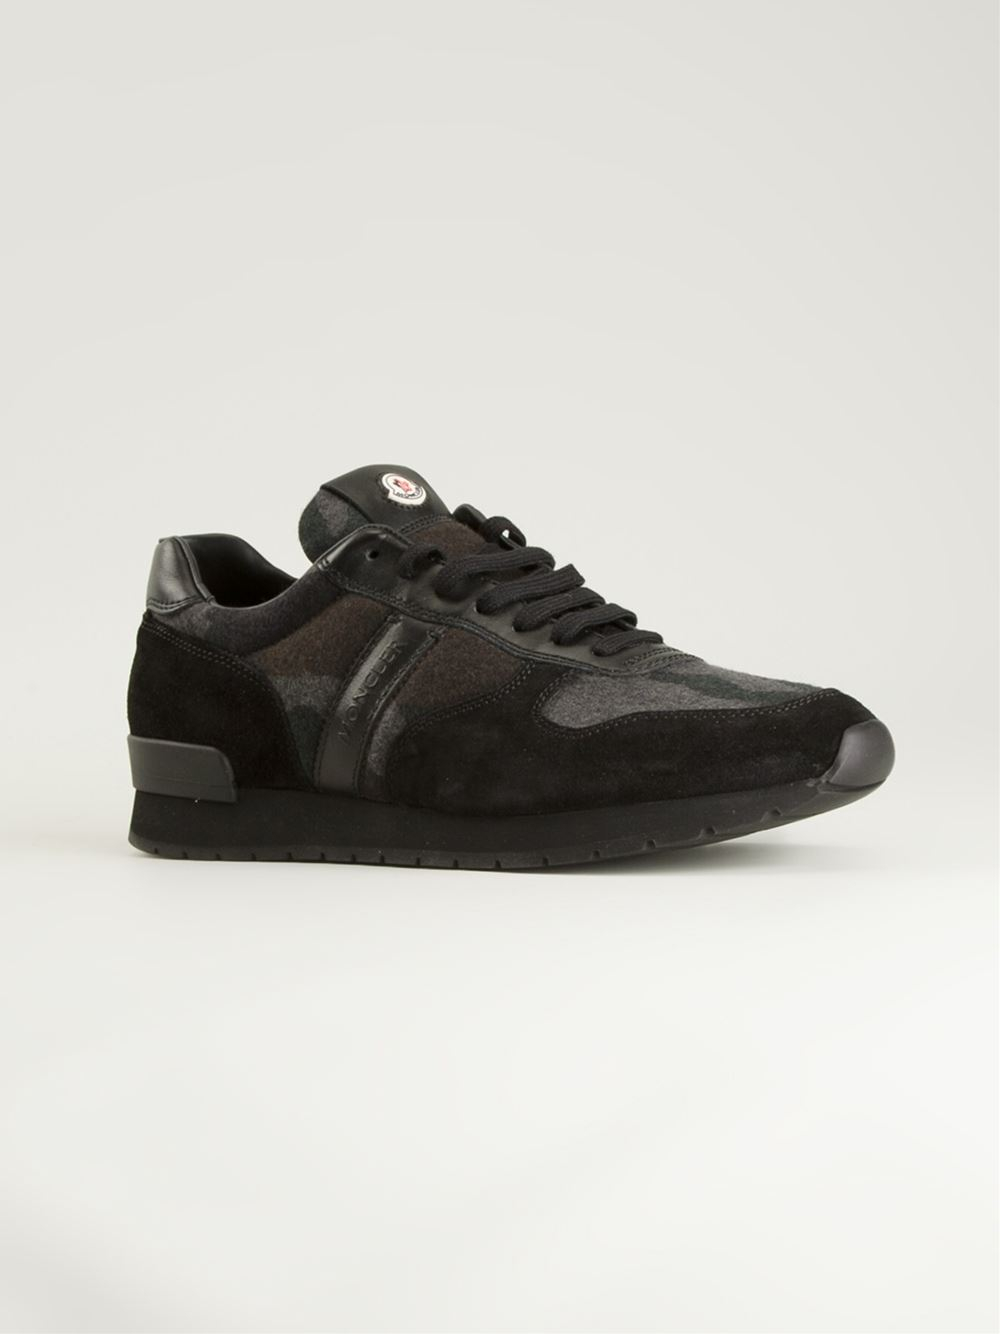 moncler black camo trainers